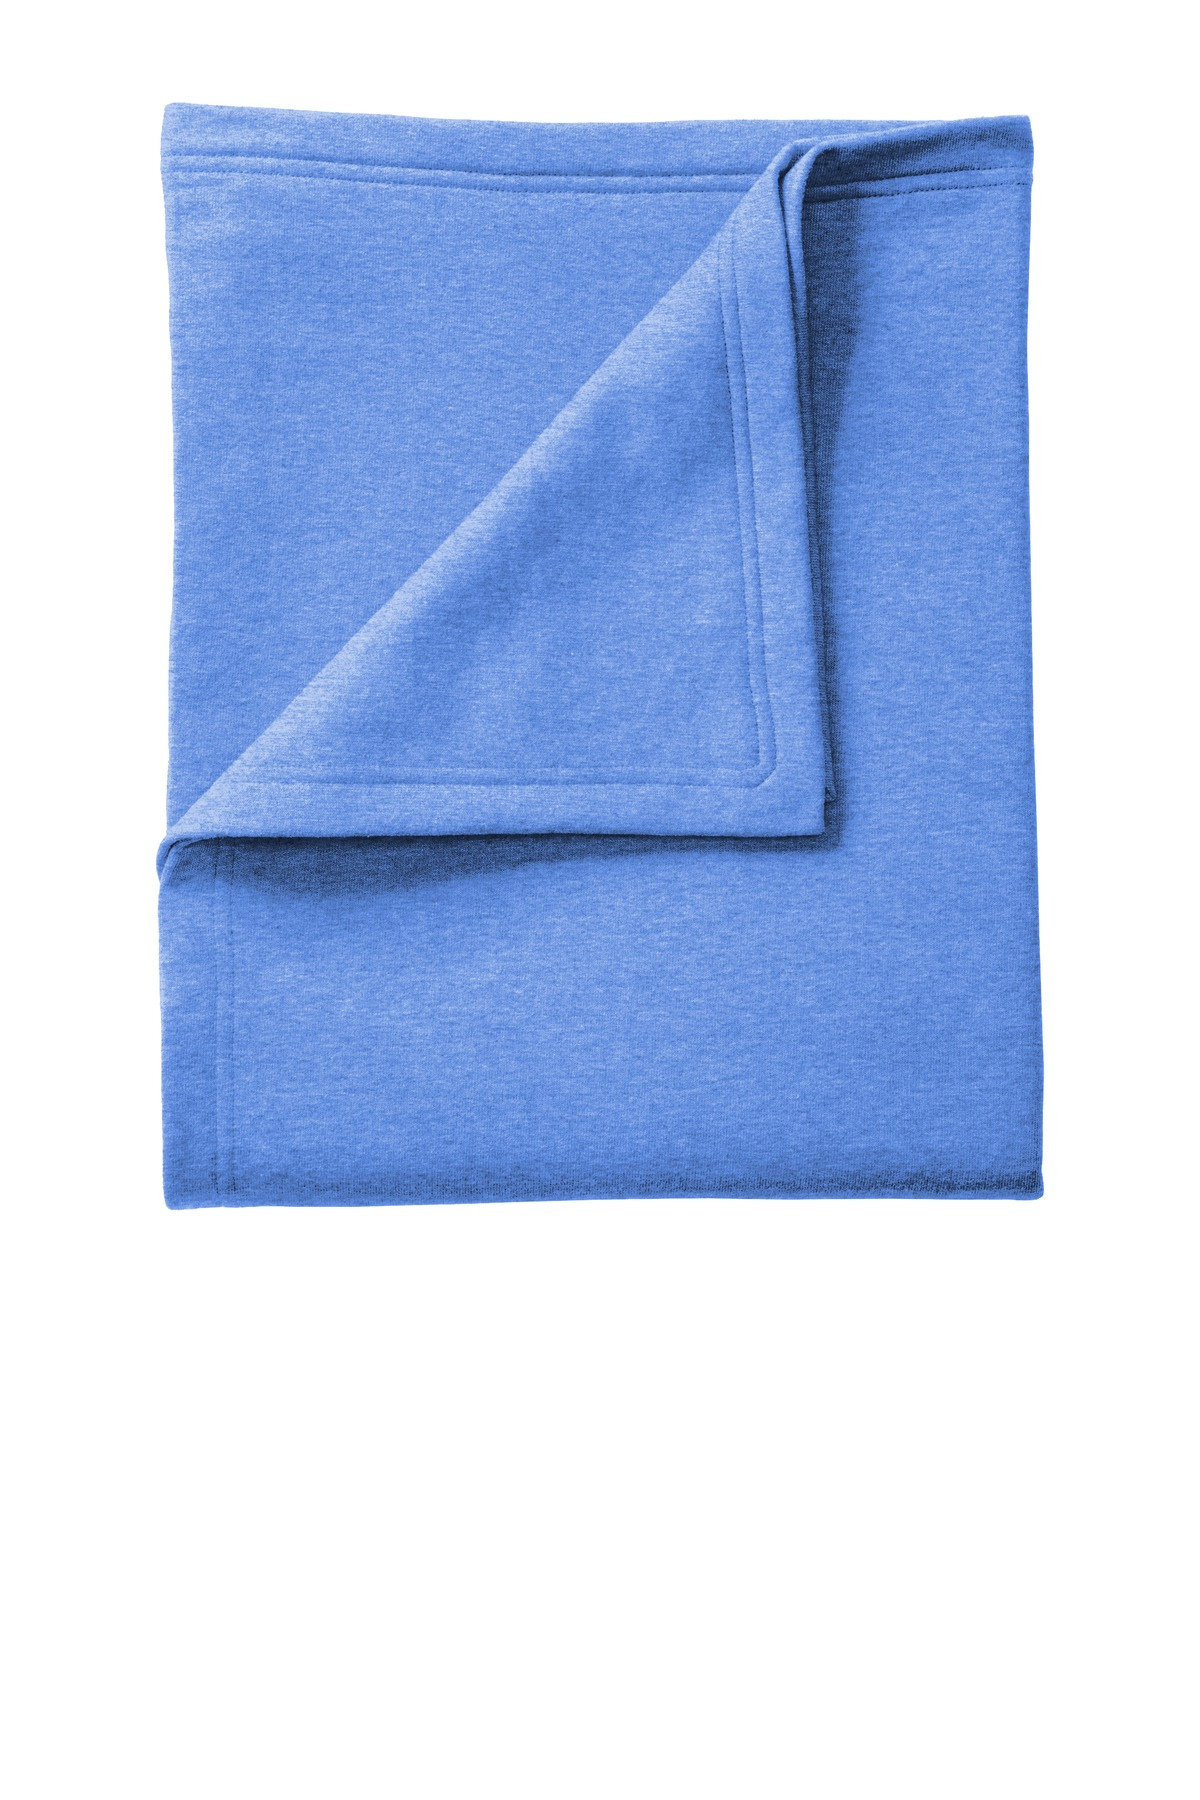 Port & Company ®  Core Fleece Sweatshirt Blanket. BP78 - Heather Royal